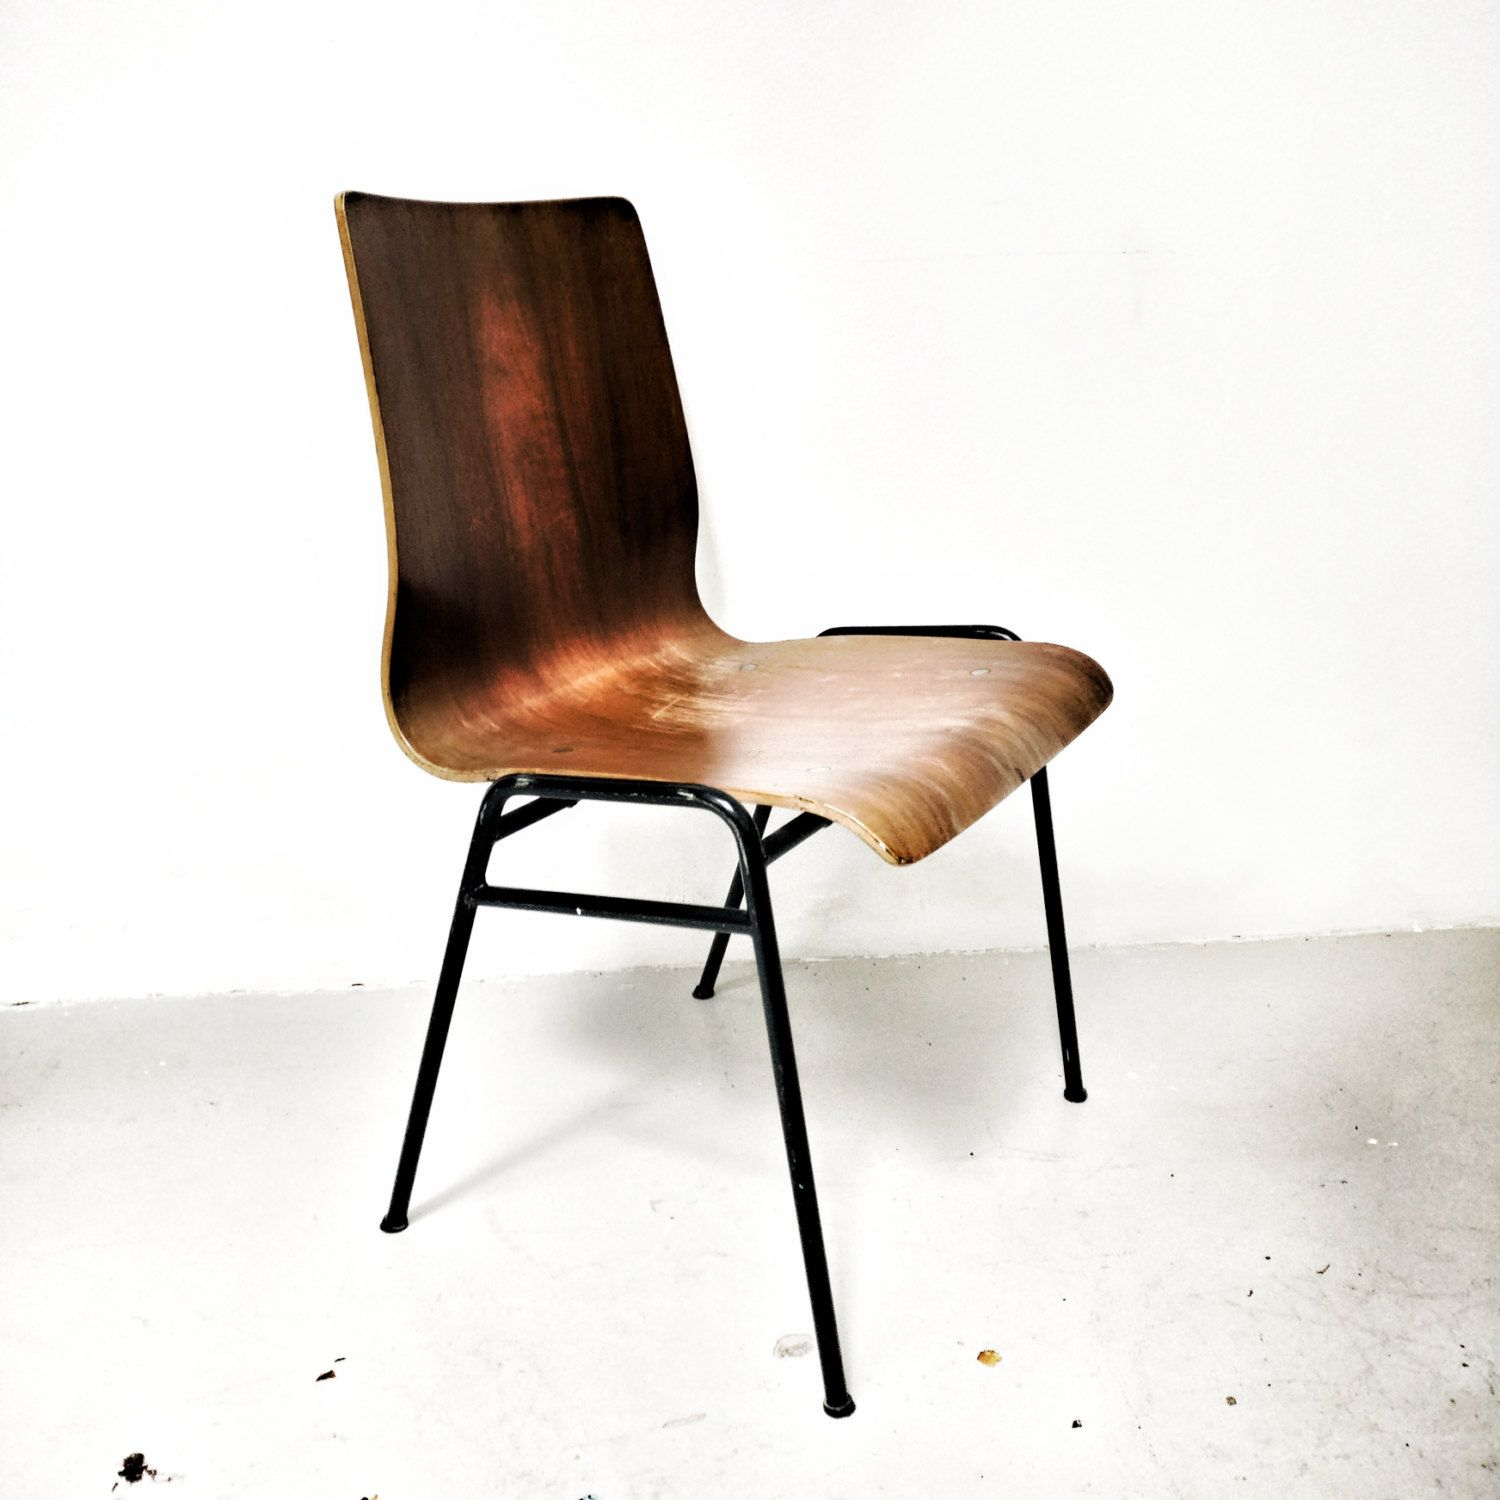 Sedie In Legno Anni 50.Lot Of 4 Vintage Original Chairs 50 Years Old In Curved Wood